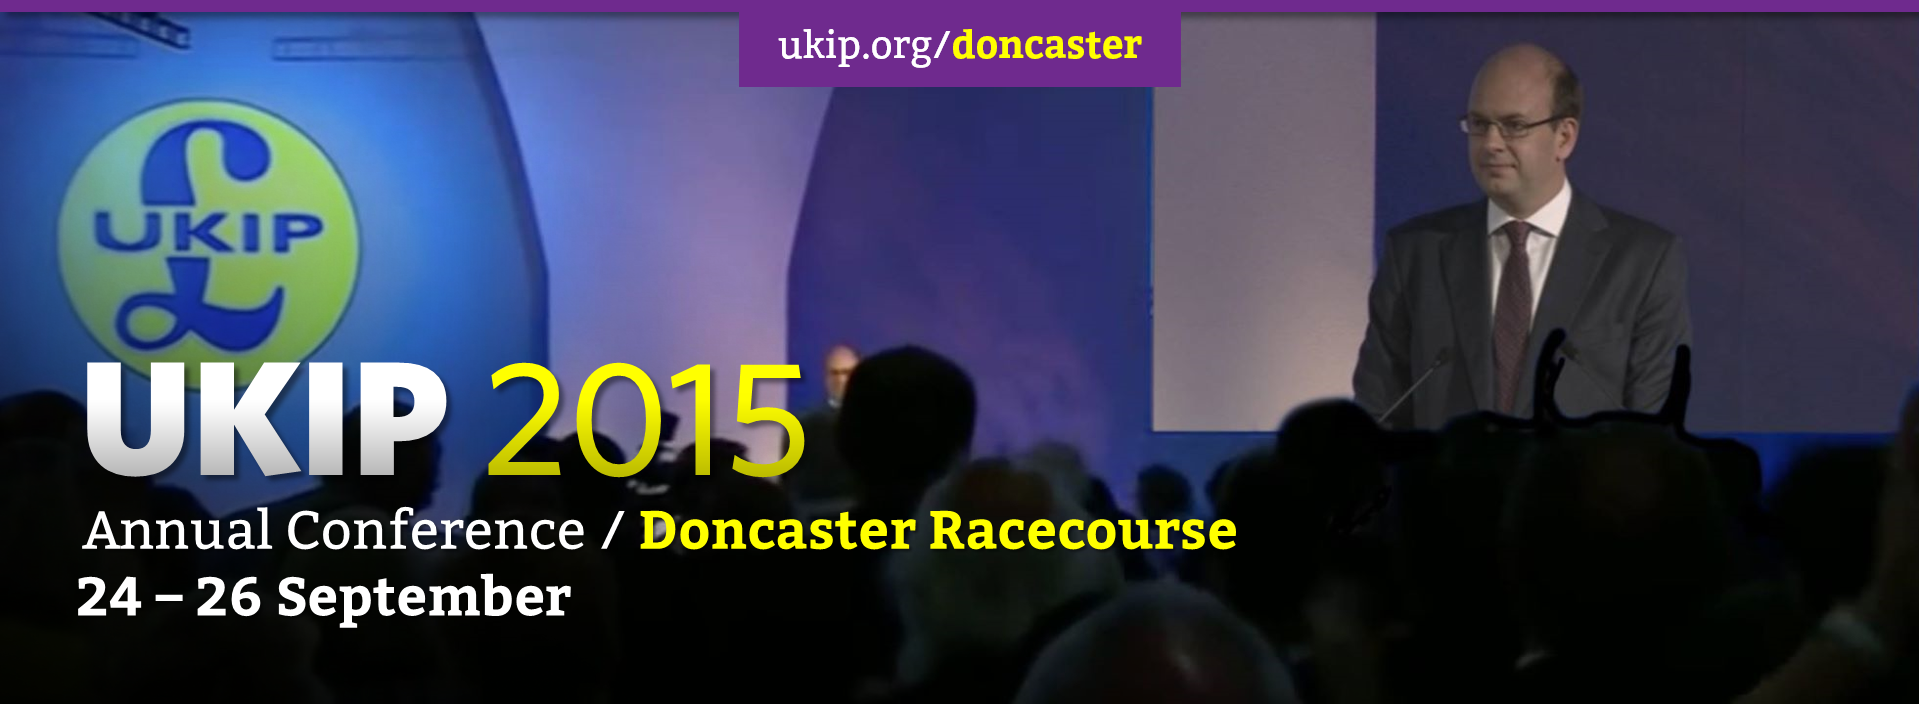 ukipdonny-ANOTHERONE.png